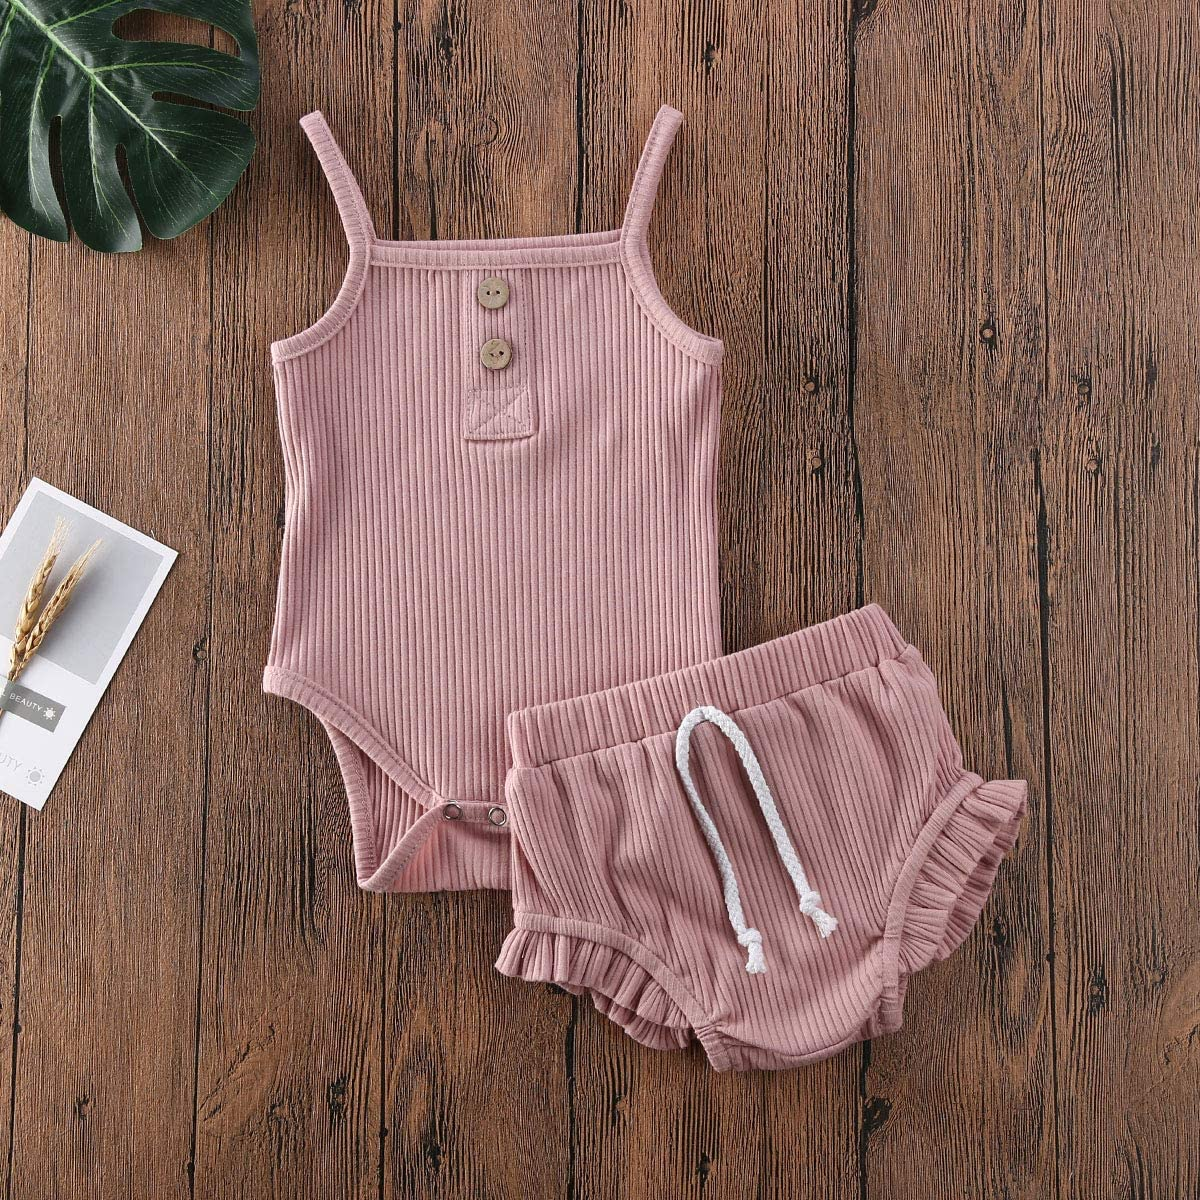 Newborn Baby Girl Knitted Outfit Button Halter Ruffle Top+Drawstring Shorts Summer Ribbed Clothes Set